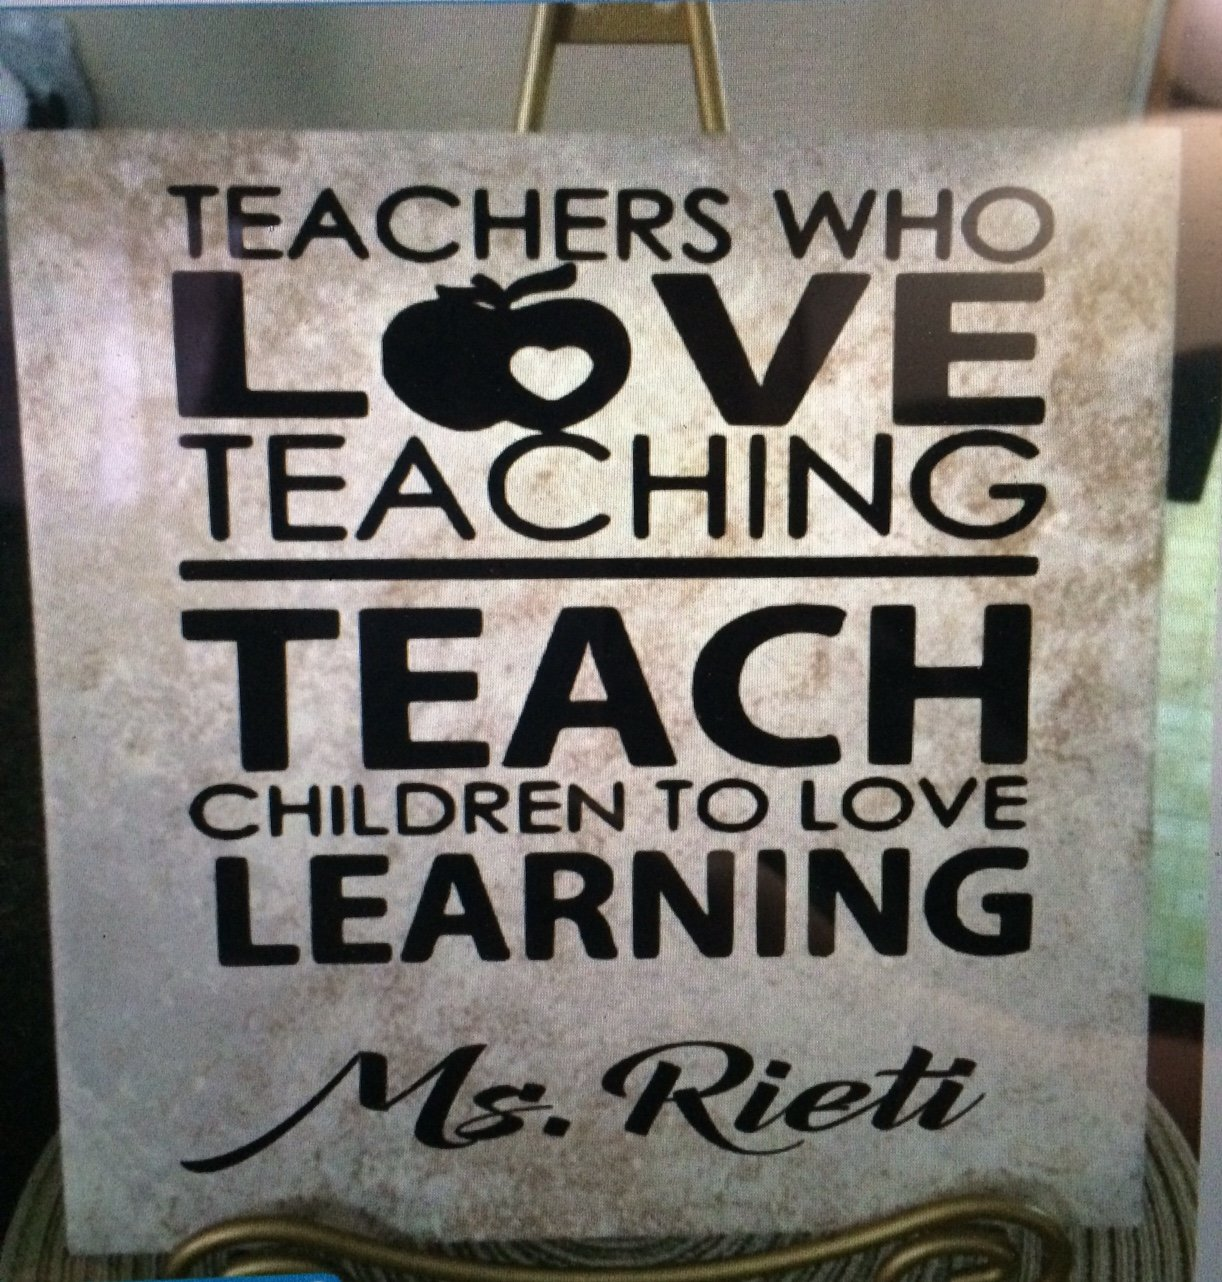 Teacher gifts apple best school personalized ceramic tile 12 x 12 teacher gifts apple best school personalized ceramic tile 12 x 12 custom gift love dailygadgetfo Choice Image